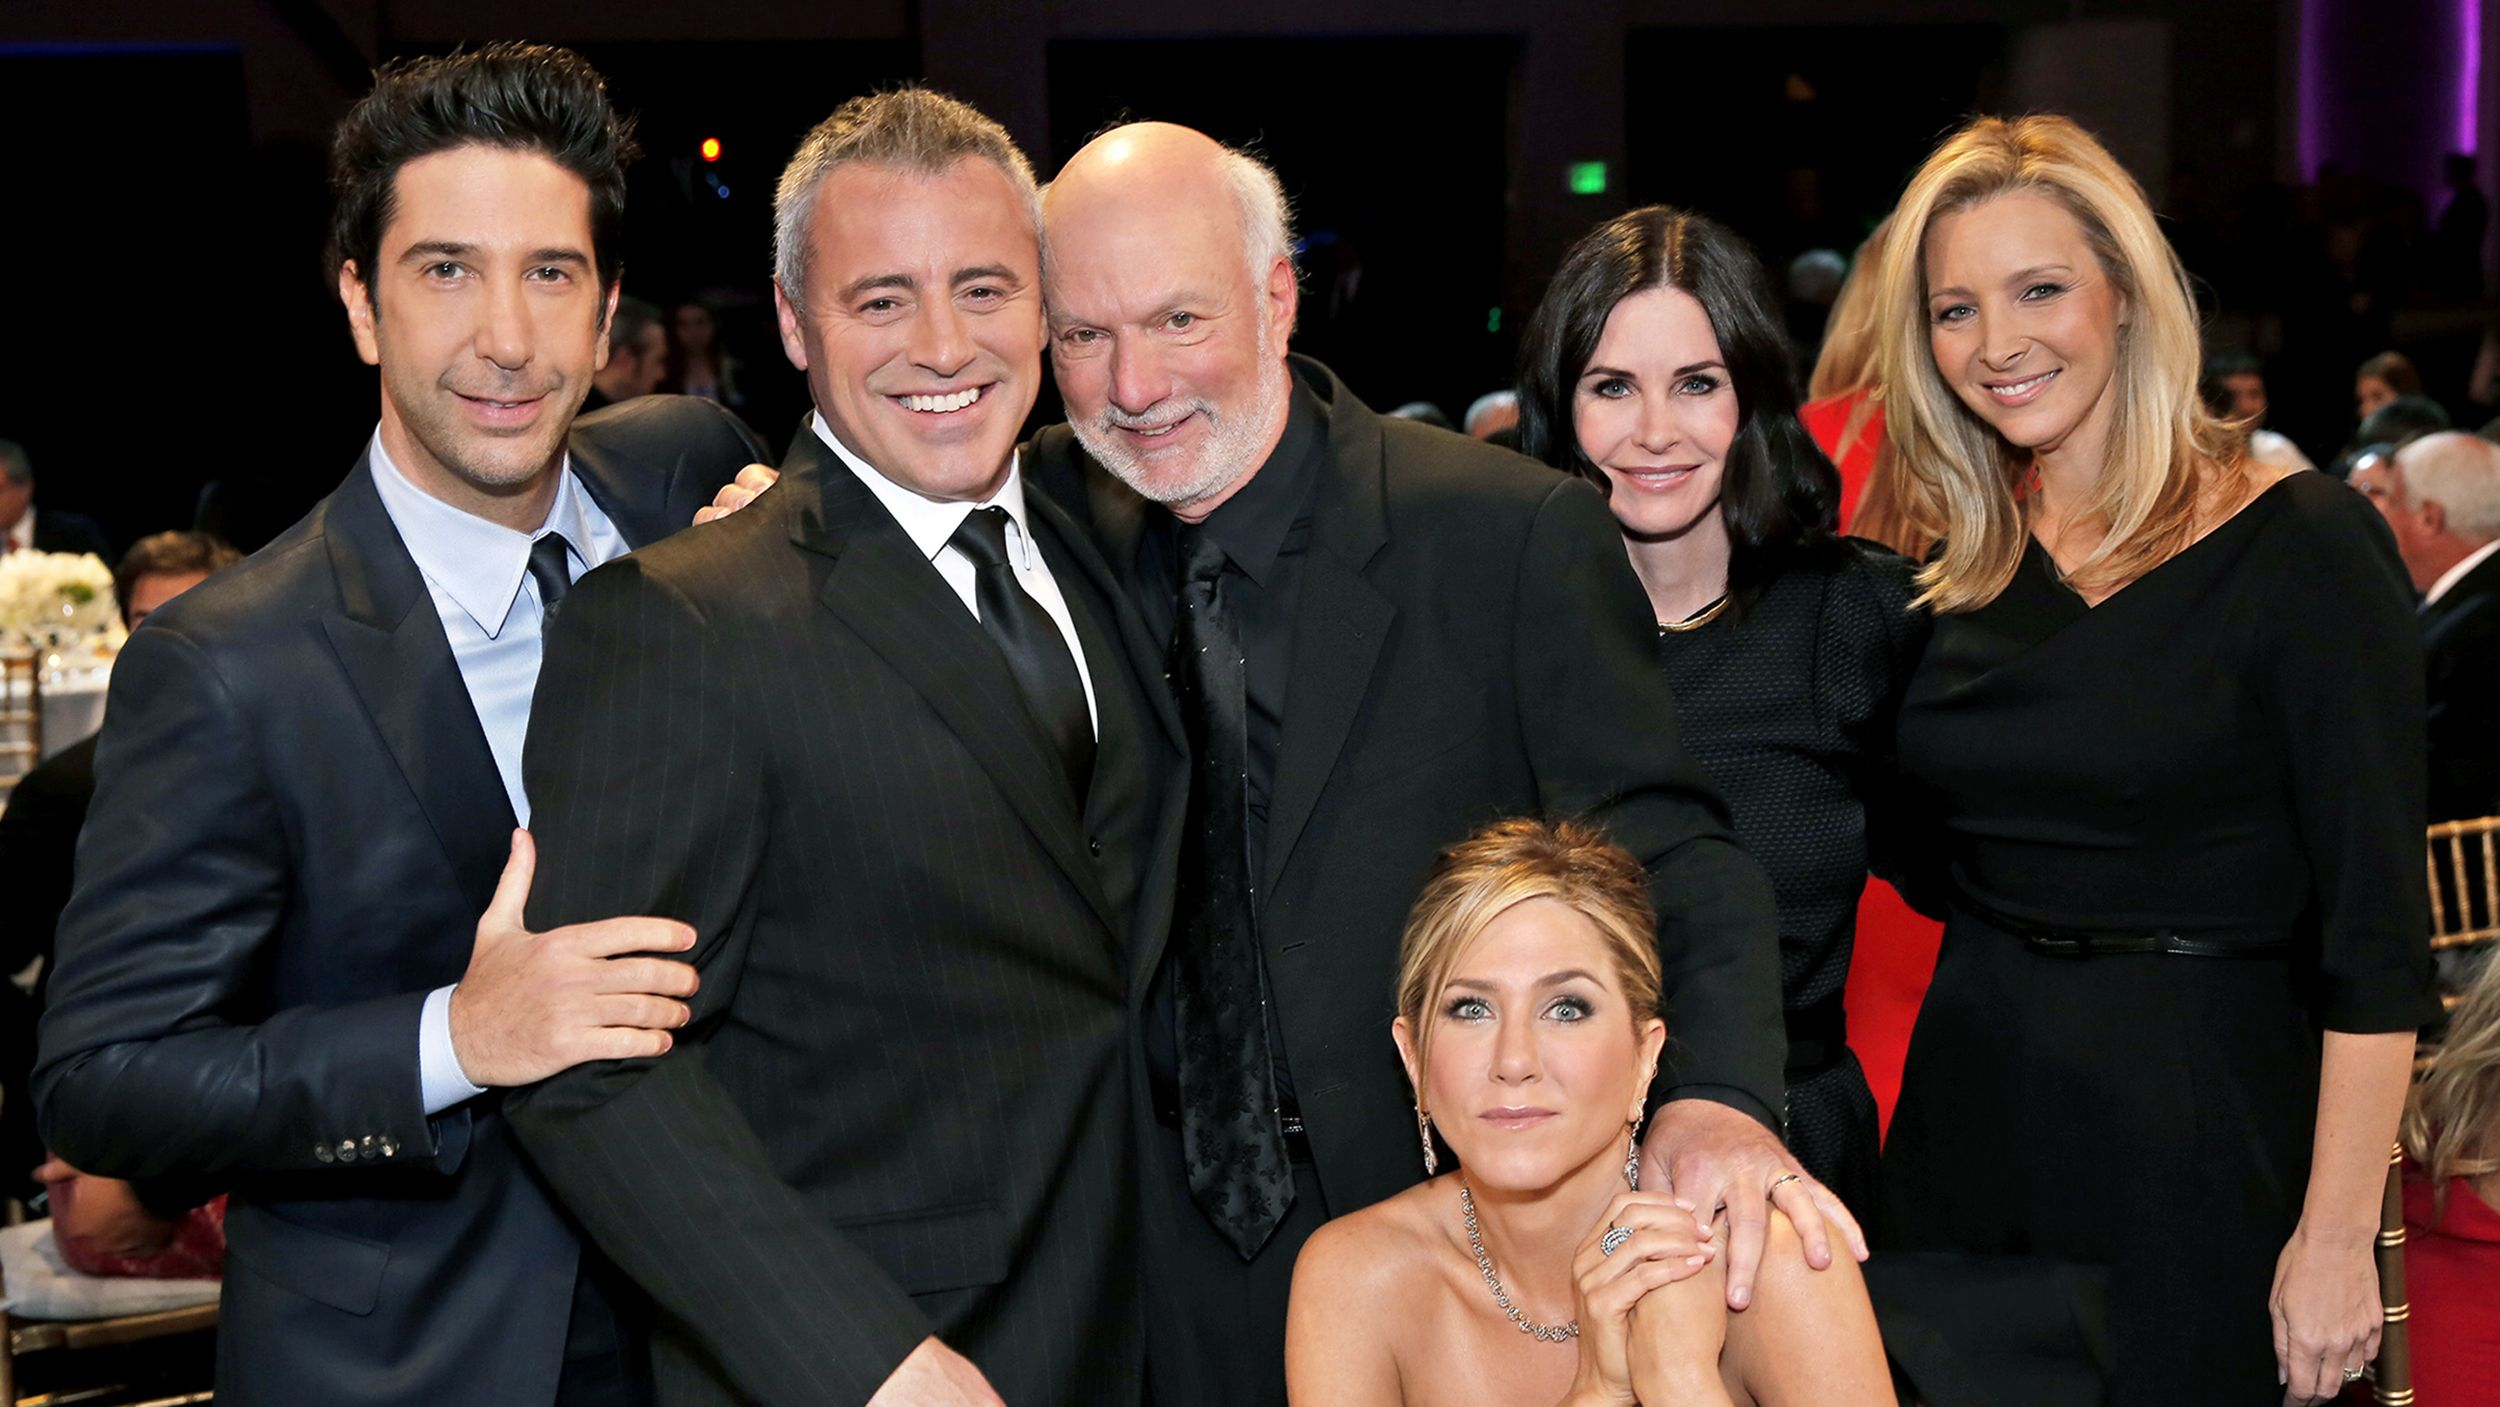 Together again! See the 6 best moments from the 'Friends' reunion | Friends  reunion, Friends cast, Friends tv